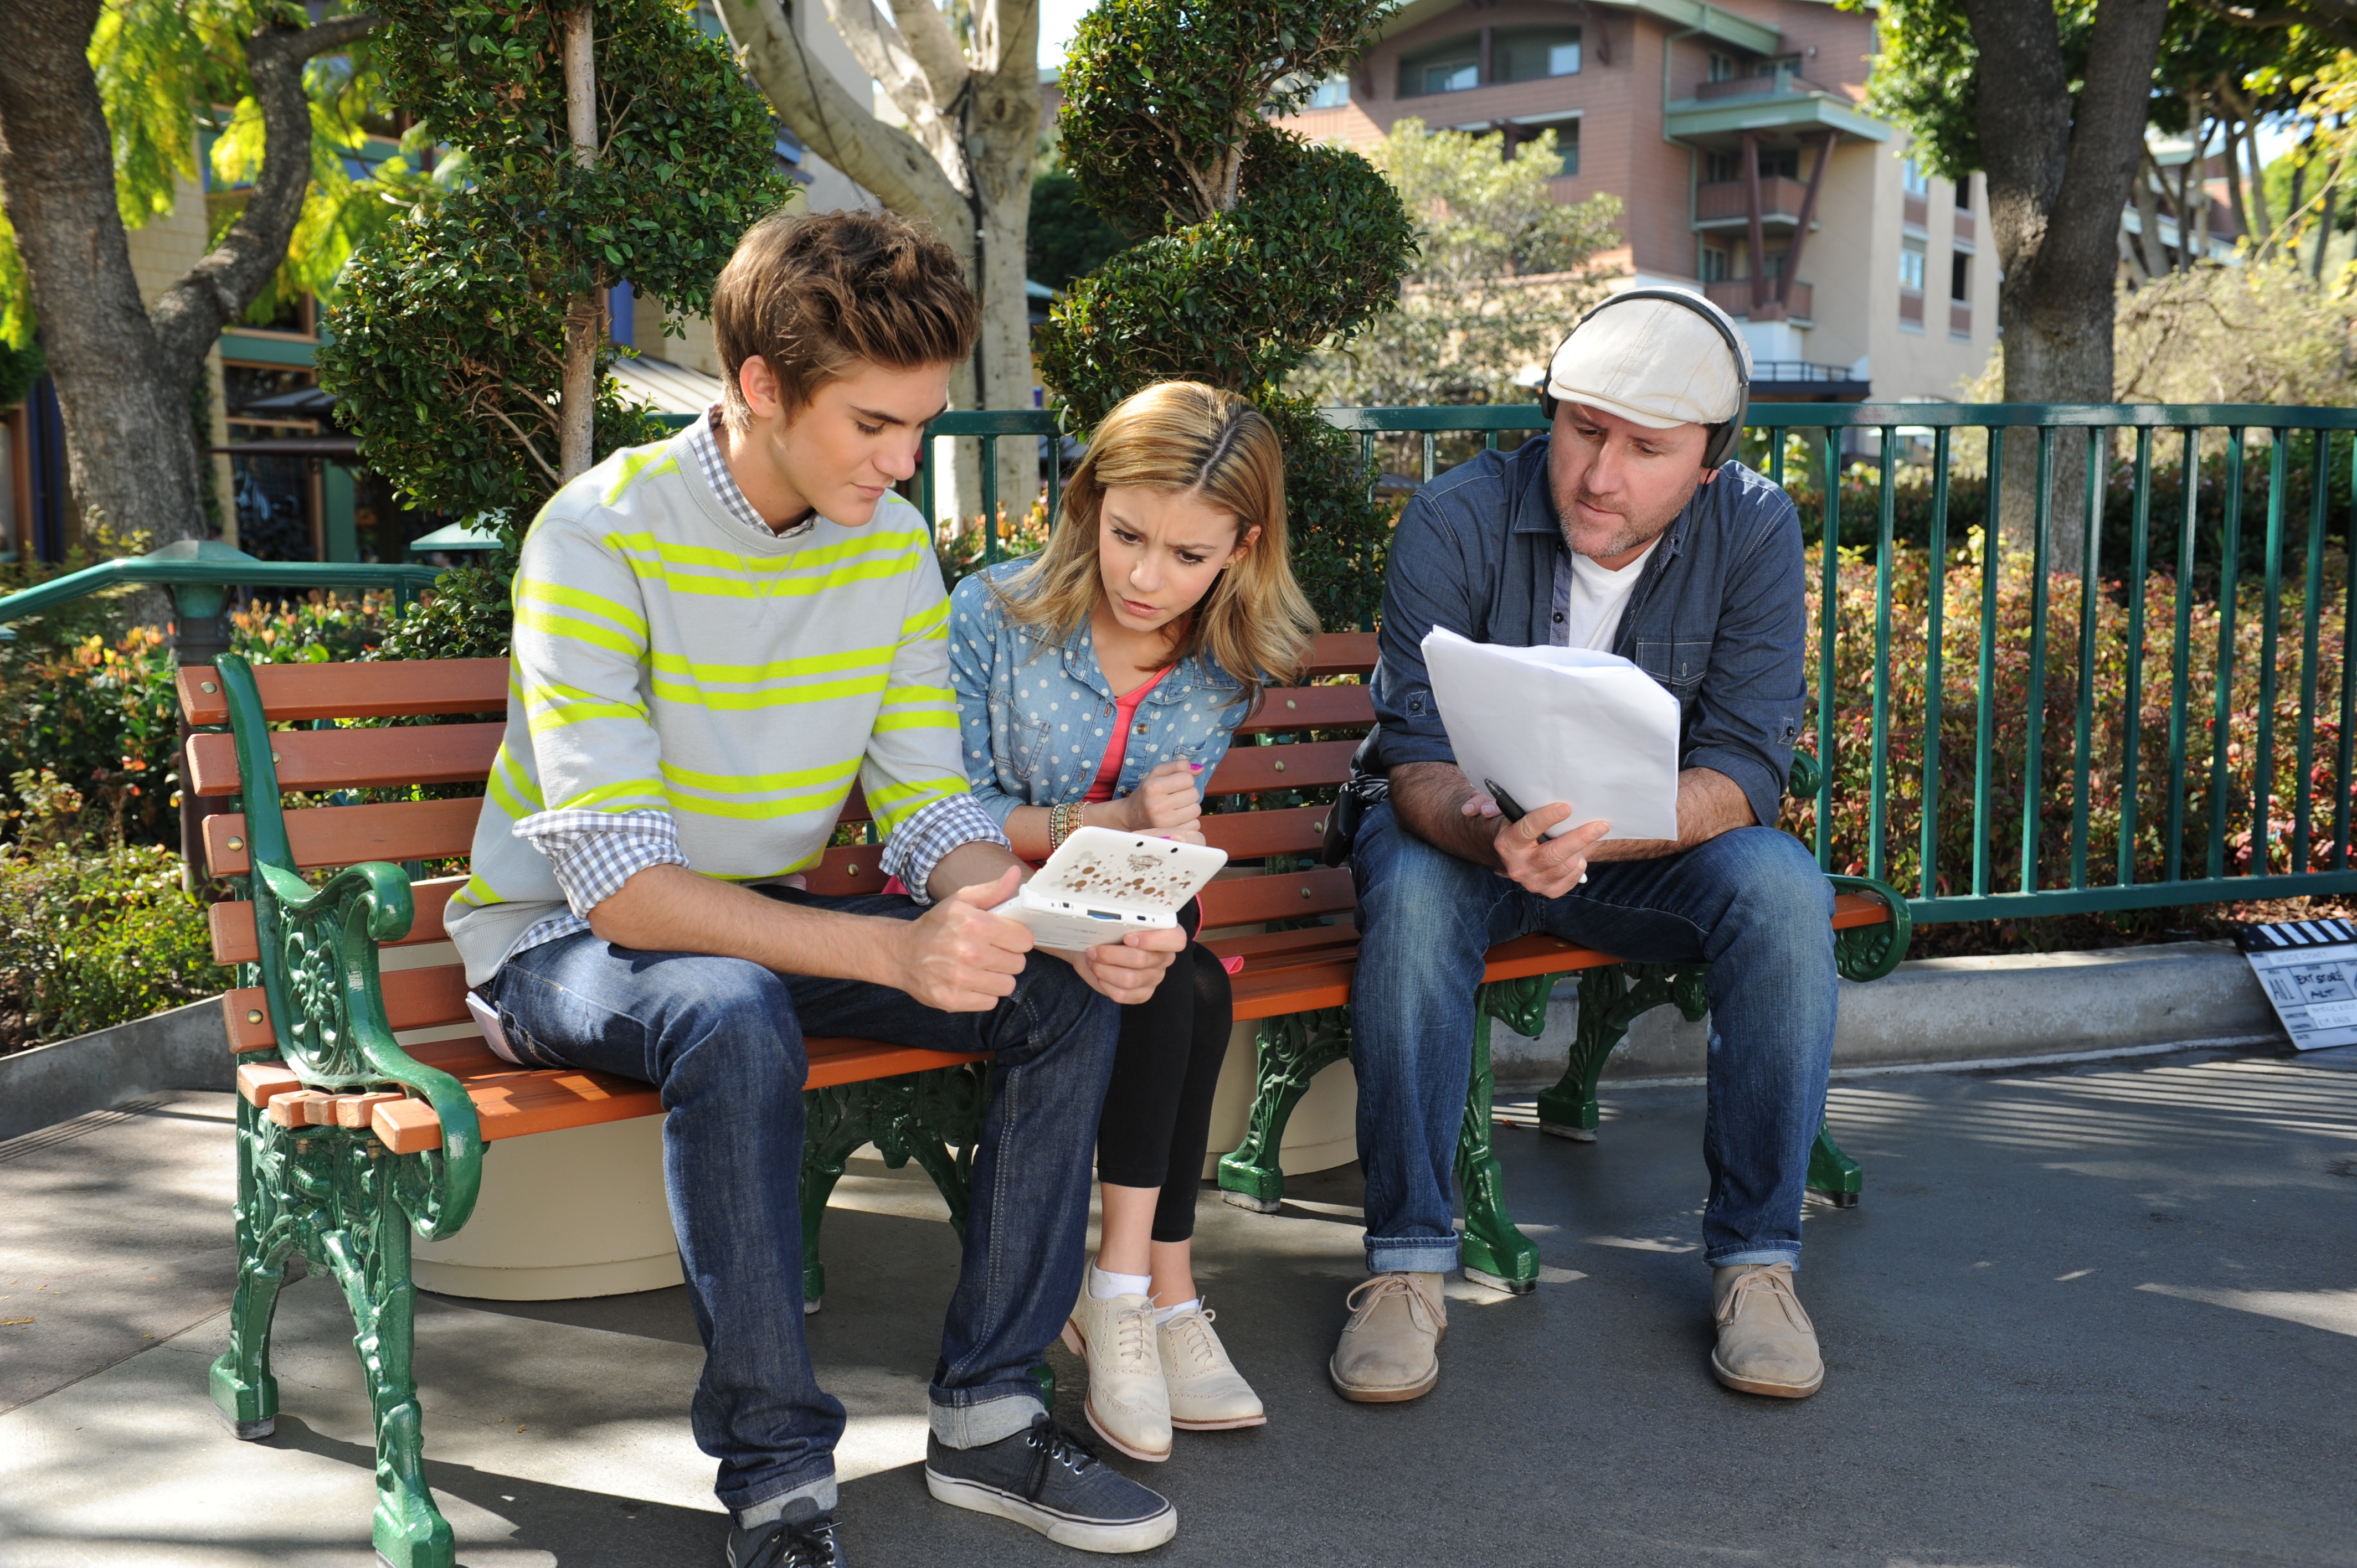 In this photo provided by Nintendo of America, actor G Hannelius, currently starring in the Disney Channel sitcom Dog With A Blog, reviews the script with actor Cole Pendery and director Patrick Kiely while on set for a Disney Magical World promo shoot at the Downtown Disney® District last month. Launching exclusively for the Nintendo 3DS family of systems on April 11, Disney Magical World allows players to interact with more than 60 Disney characters and visit exciting Disney-themed worlds. (Photo: Business Wire)